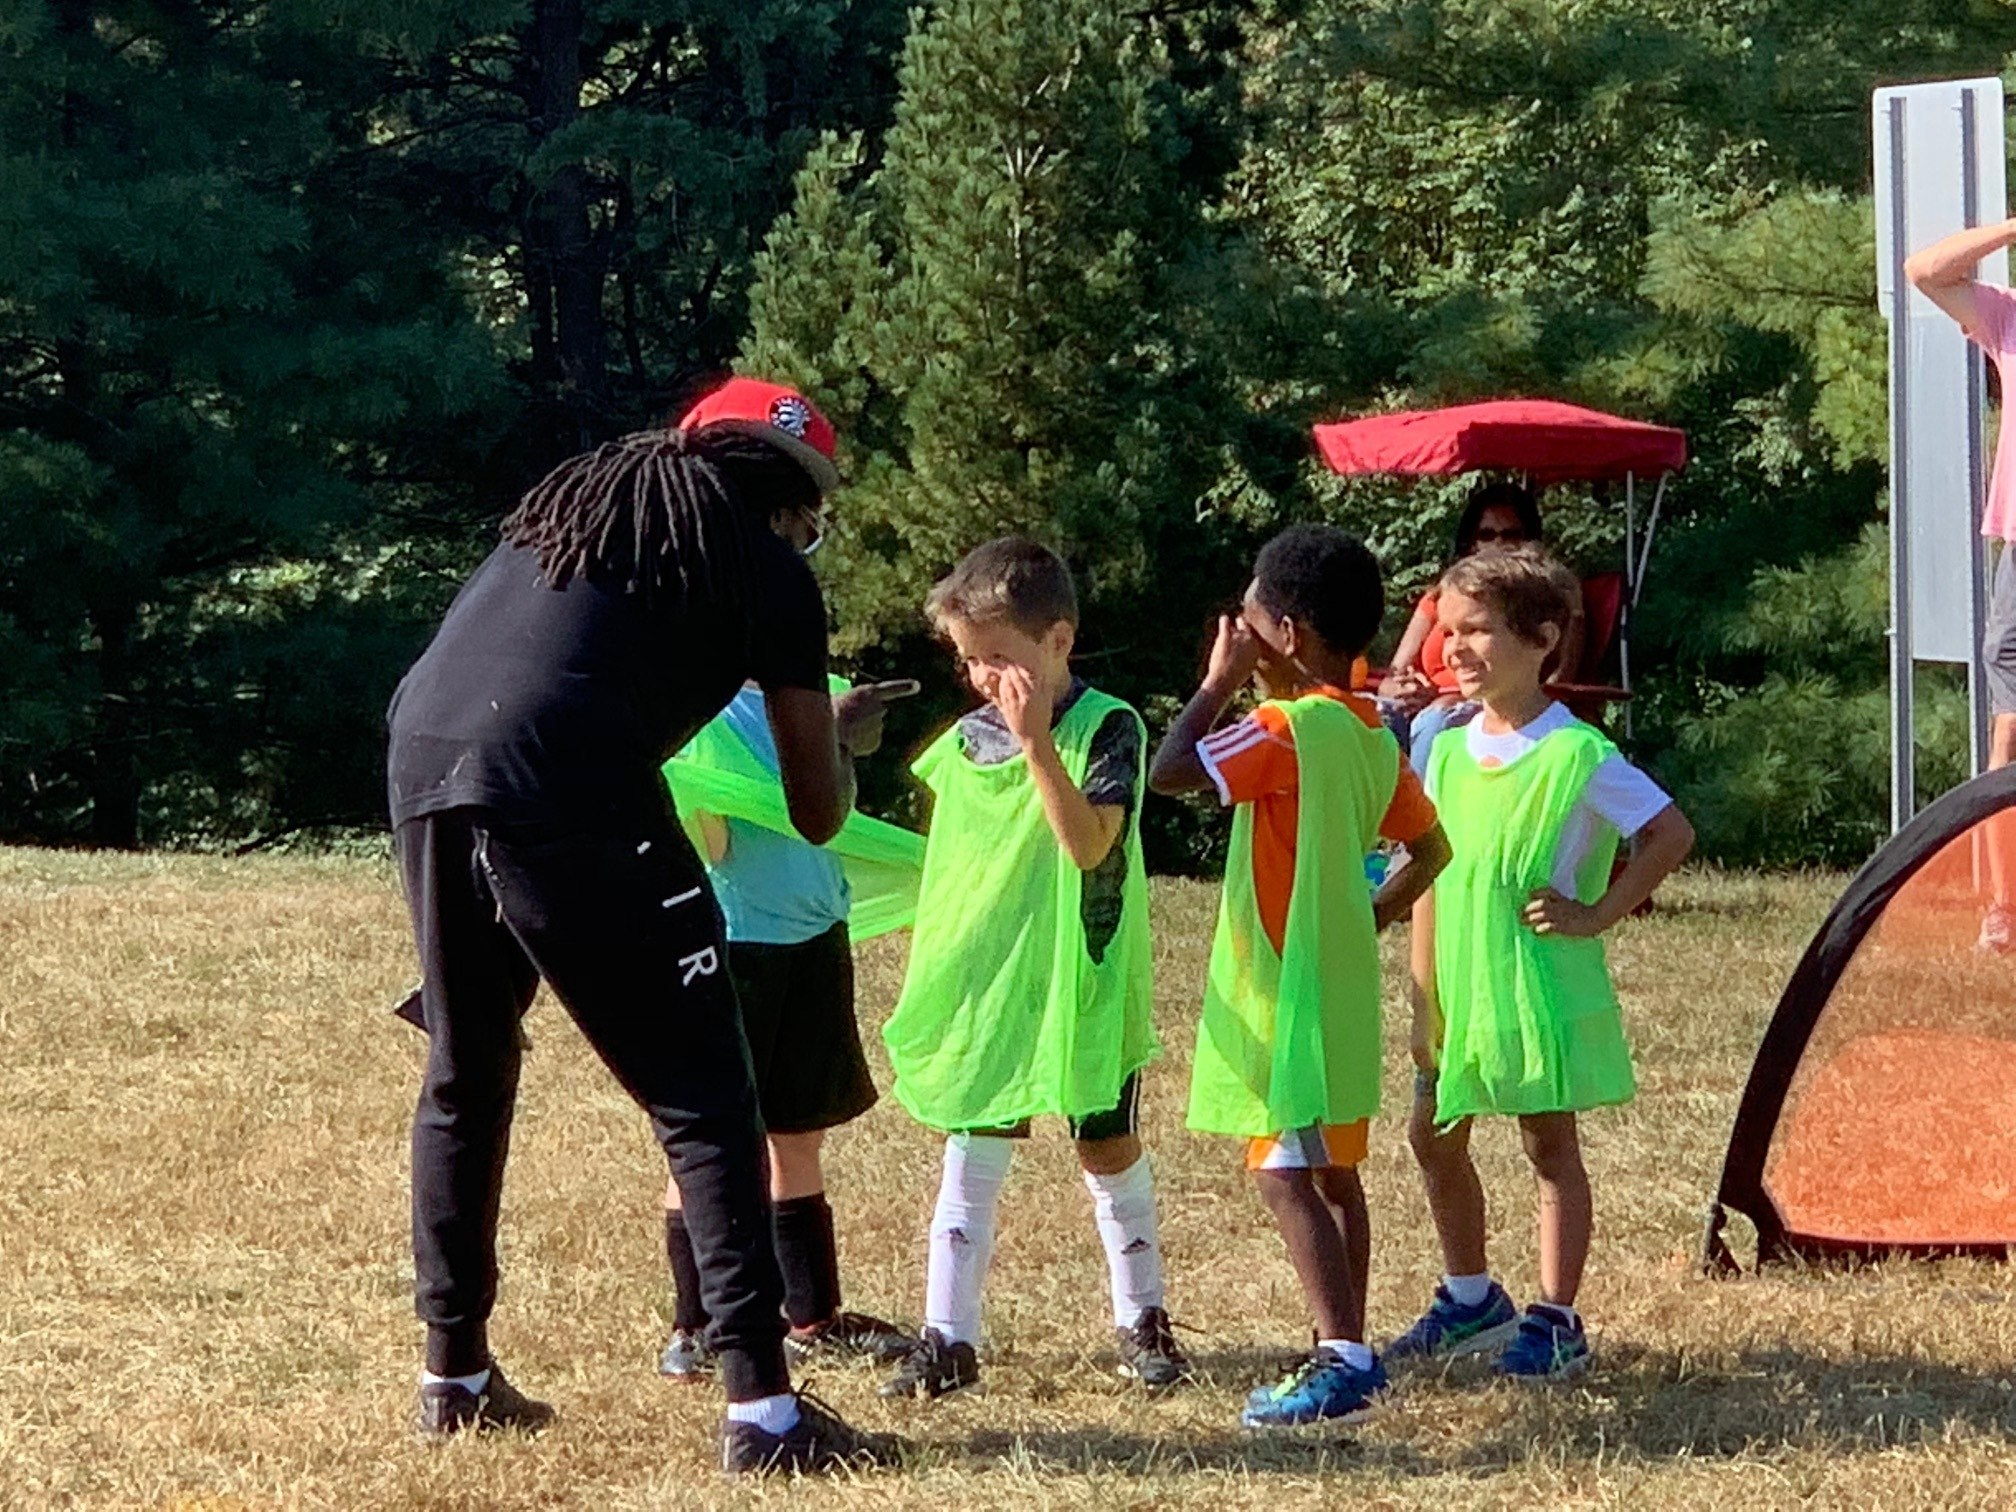 An image of a coach encouraging 4 5-year-old players wearing green training vests